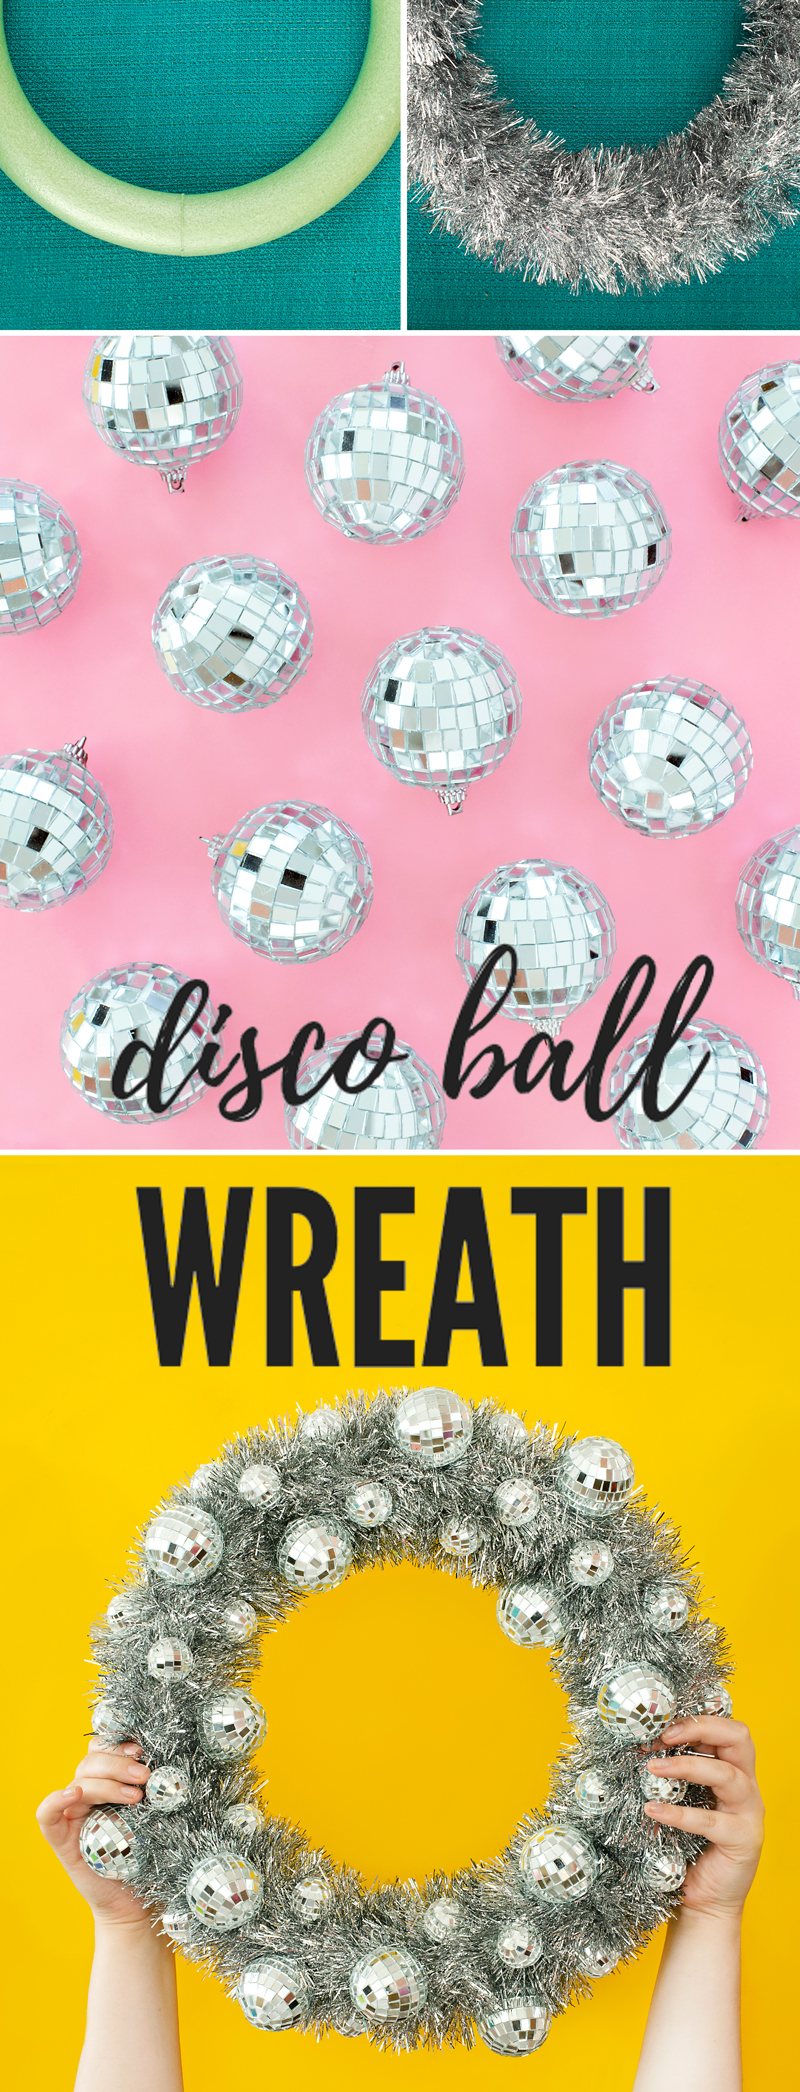 Disco Ball Wreath for New Years